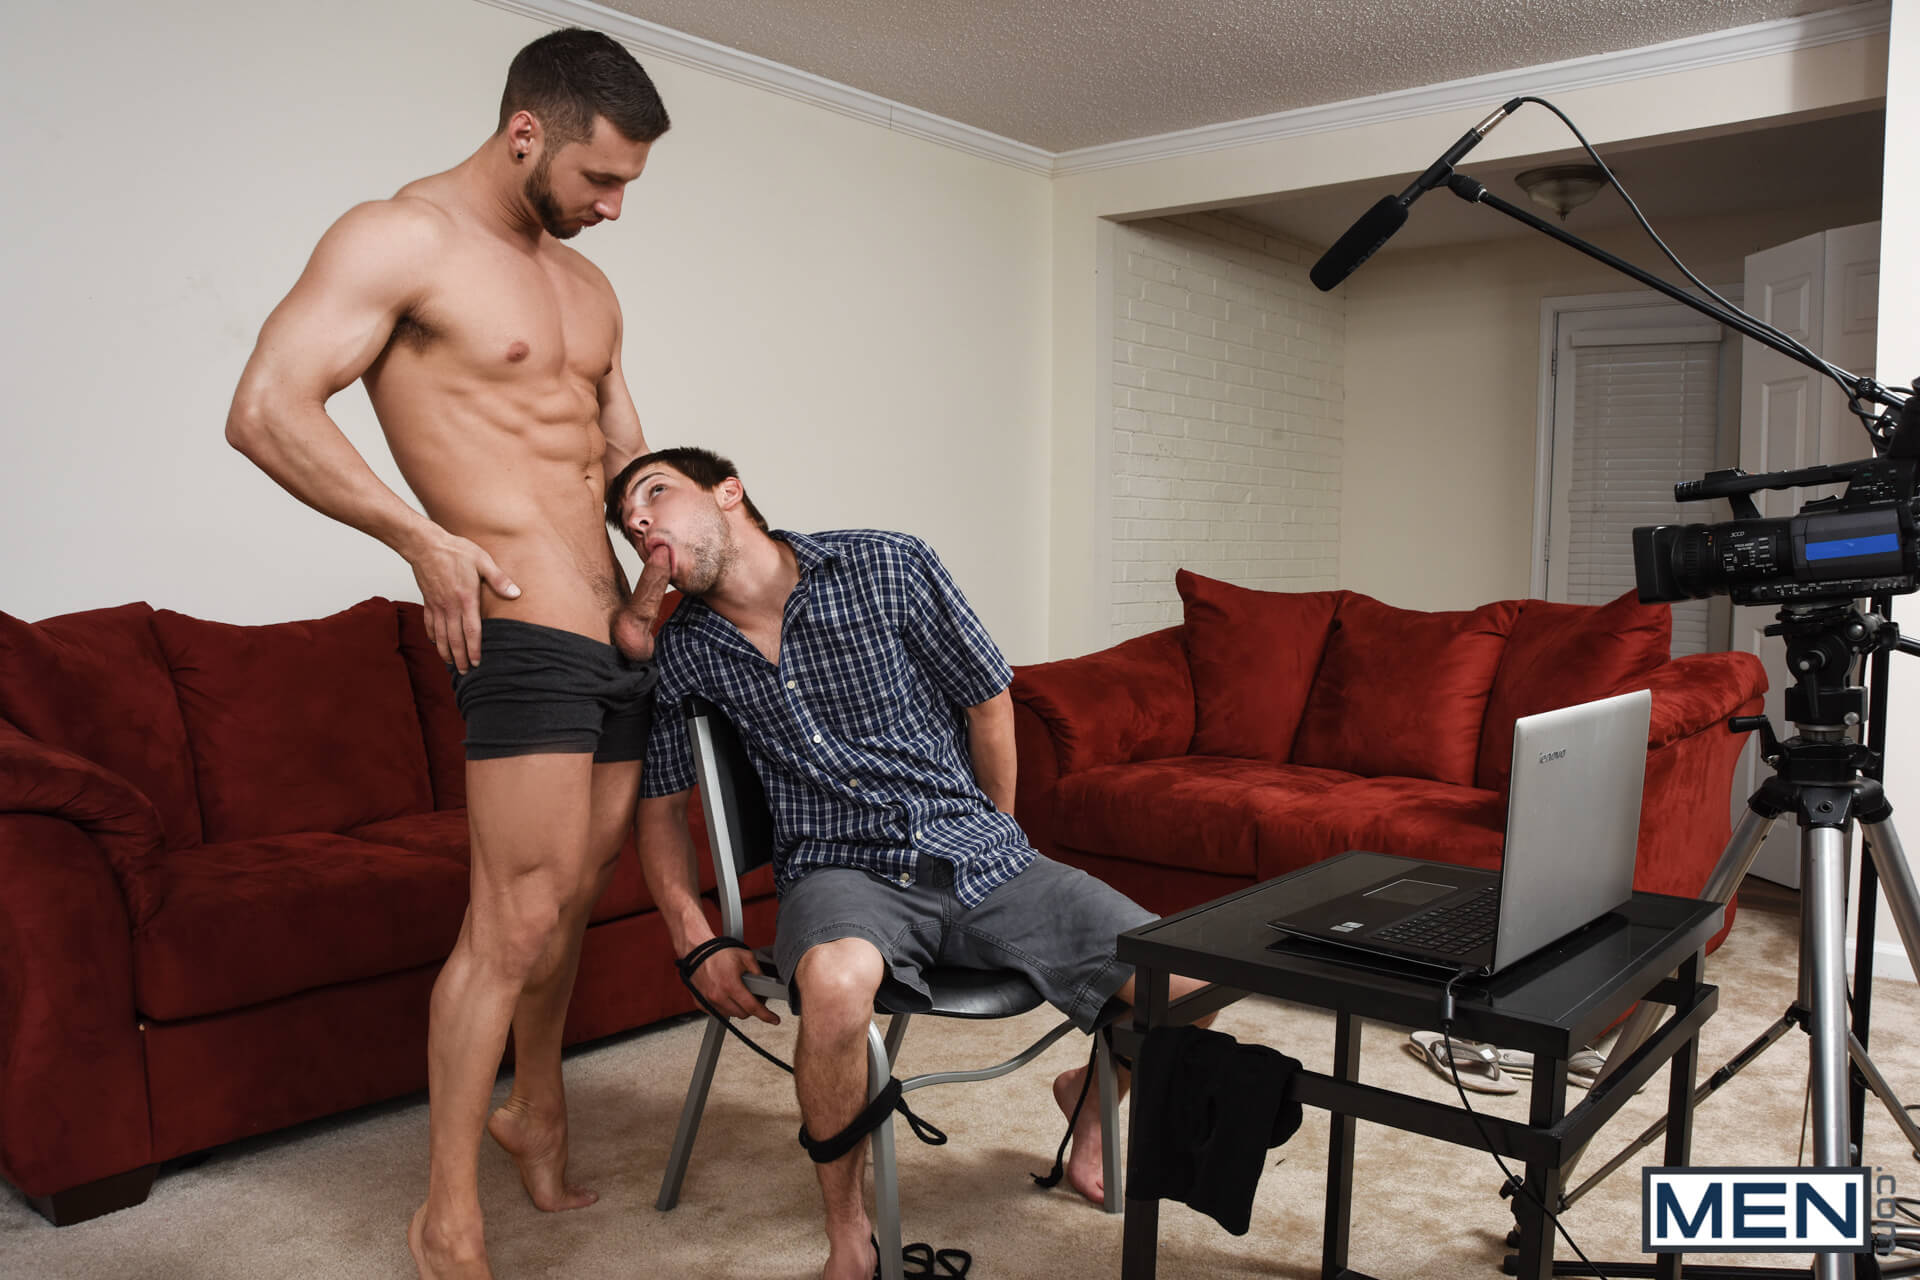 men drill my hole stealing johnny part 2 johnny rapid rod pederson gay porn blog image 9